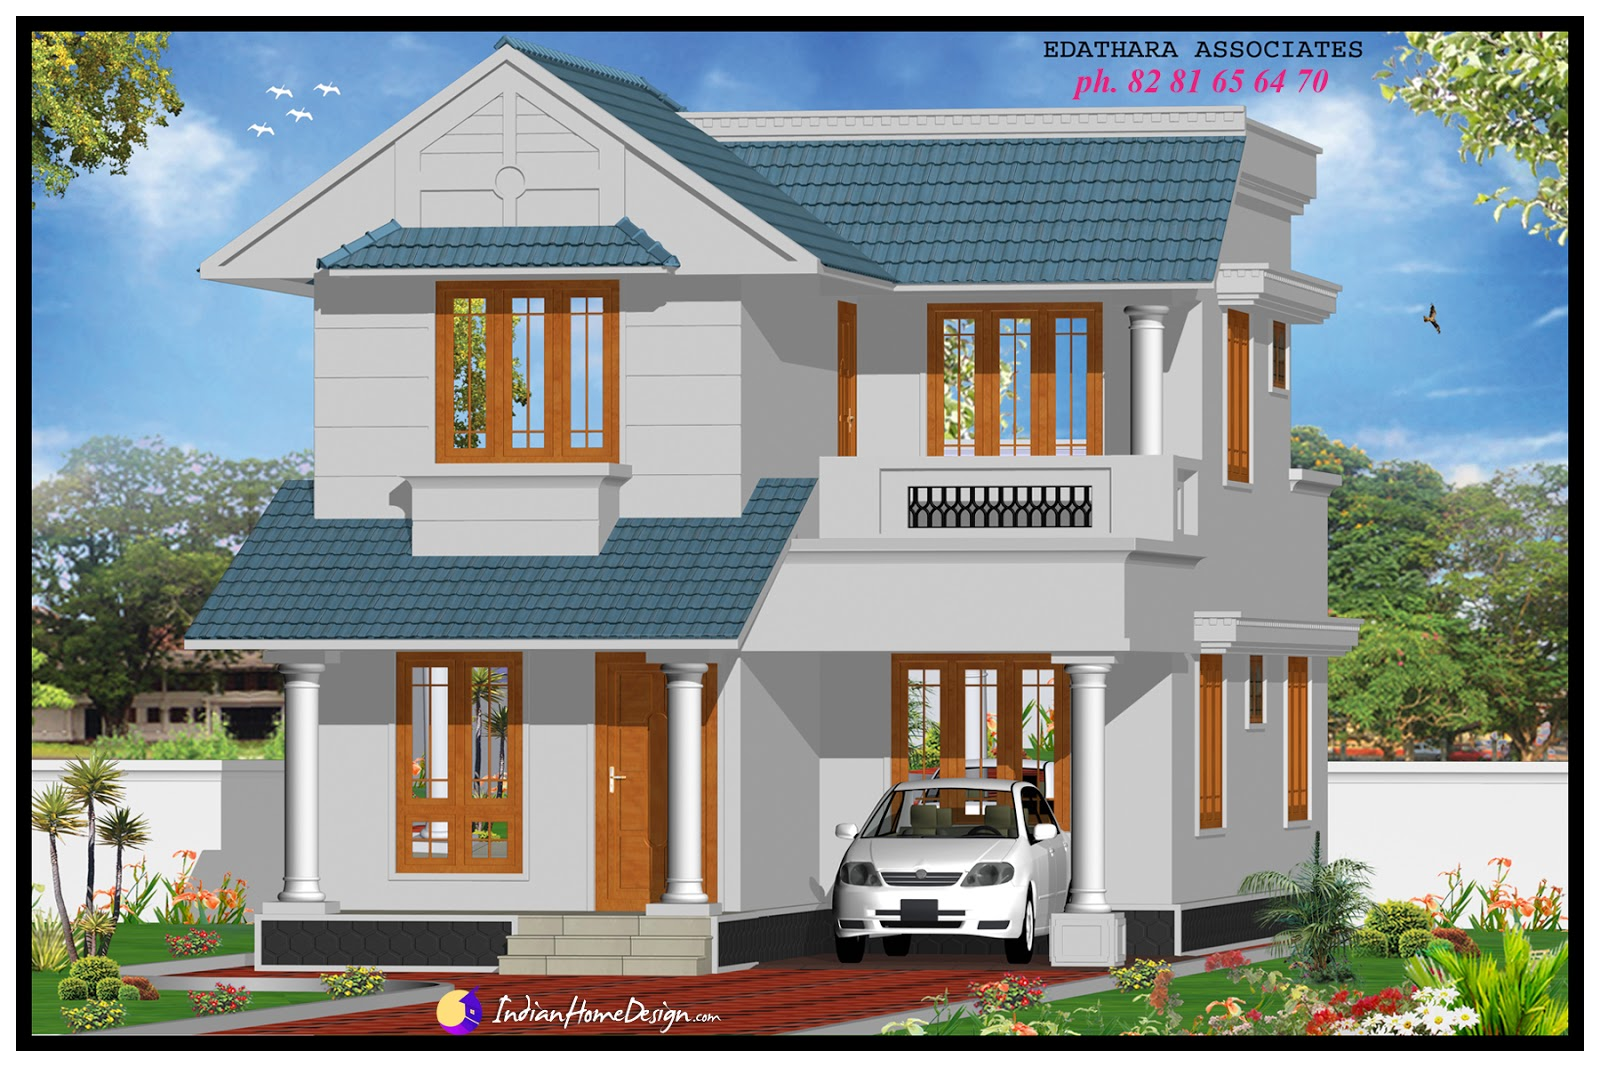 Etonnant 1491 Sqft Modern Double Floor Kerala Home Design